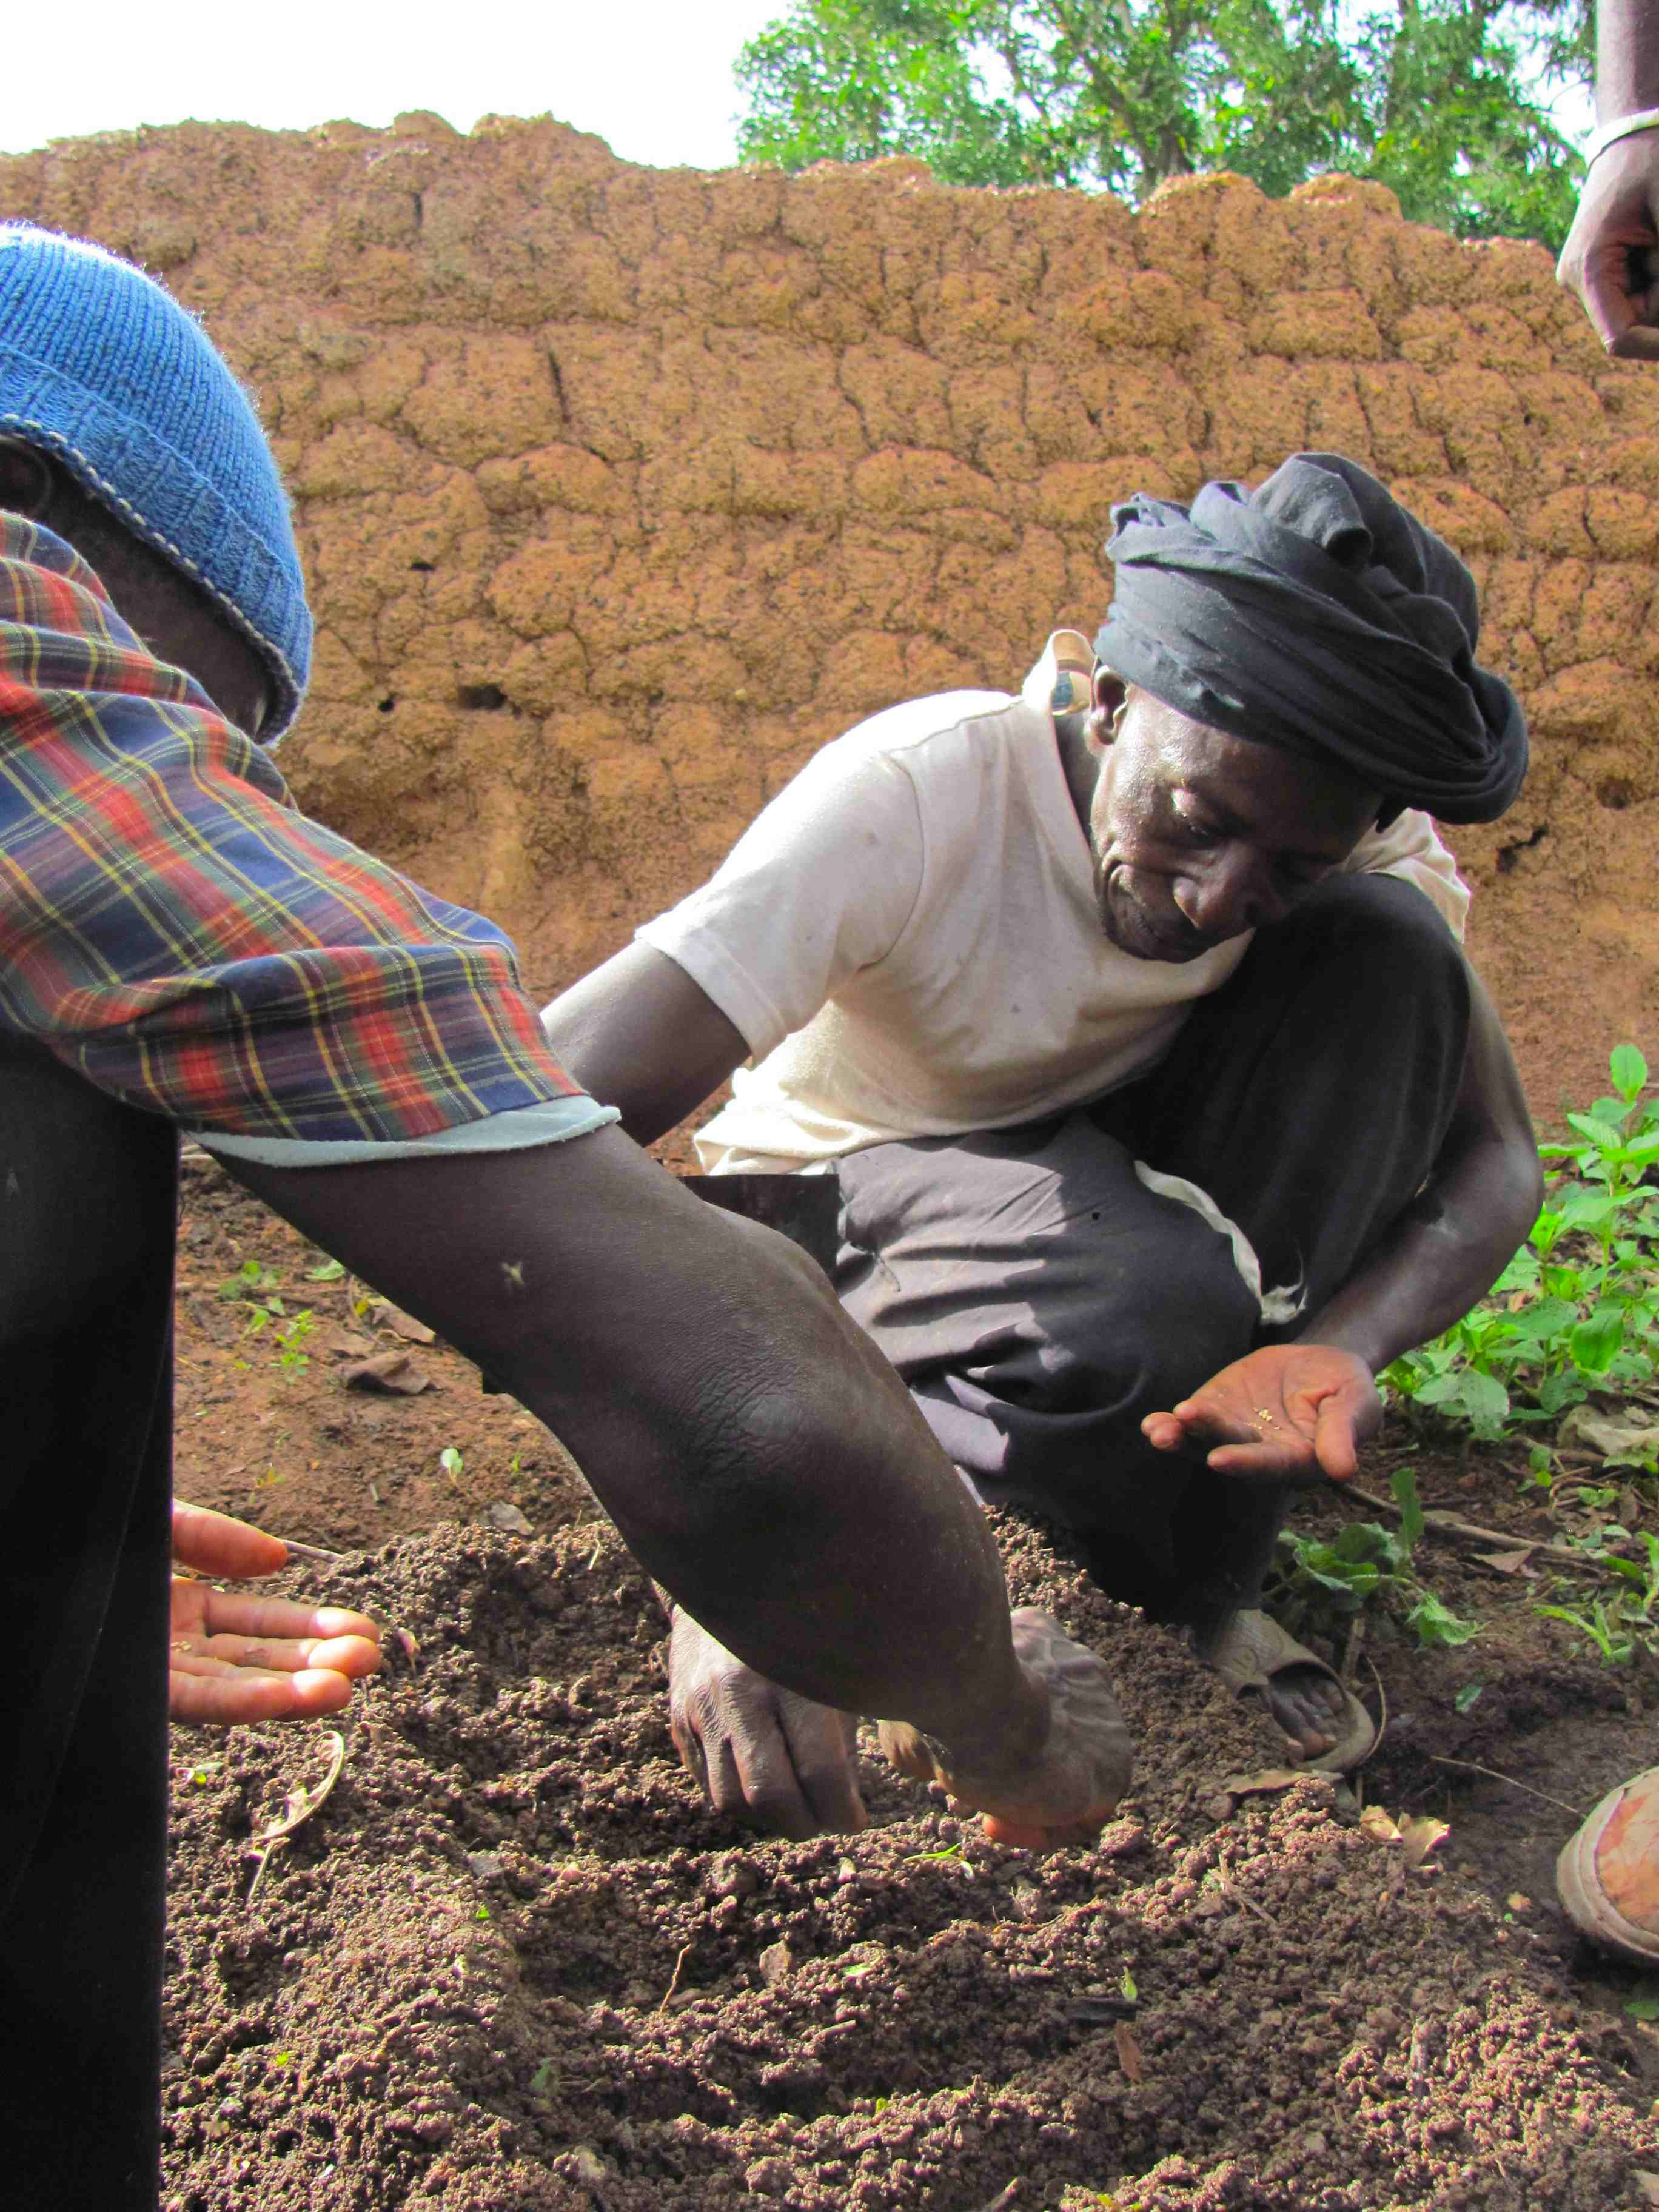 Farmers Practice Ing The Seeds In Nursery Typically Might Throw Randomly Or Clumps By Them Out It Will Be Easy To